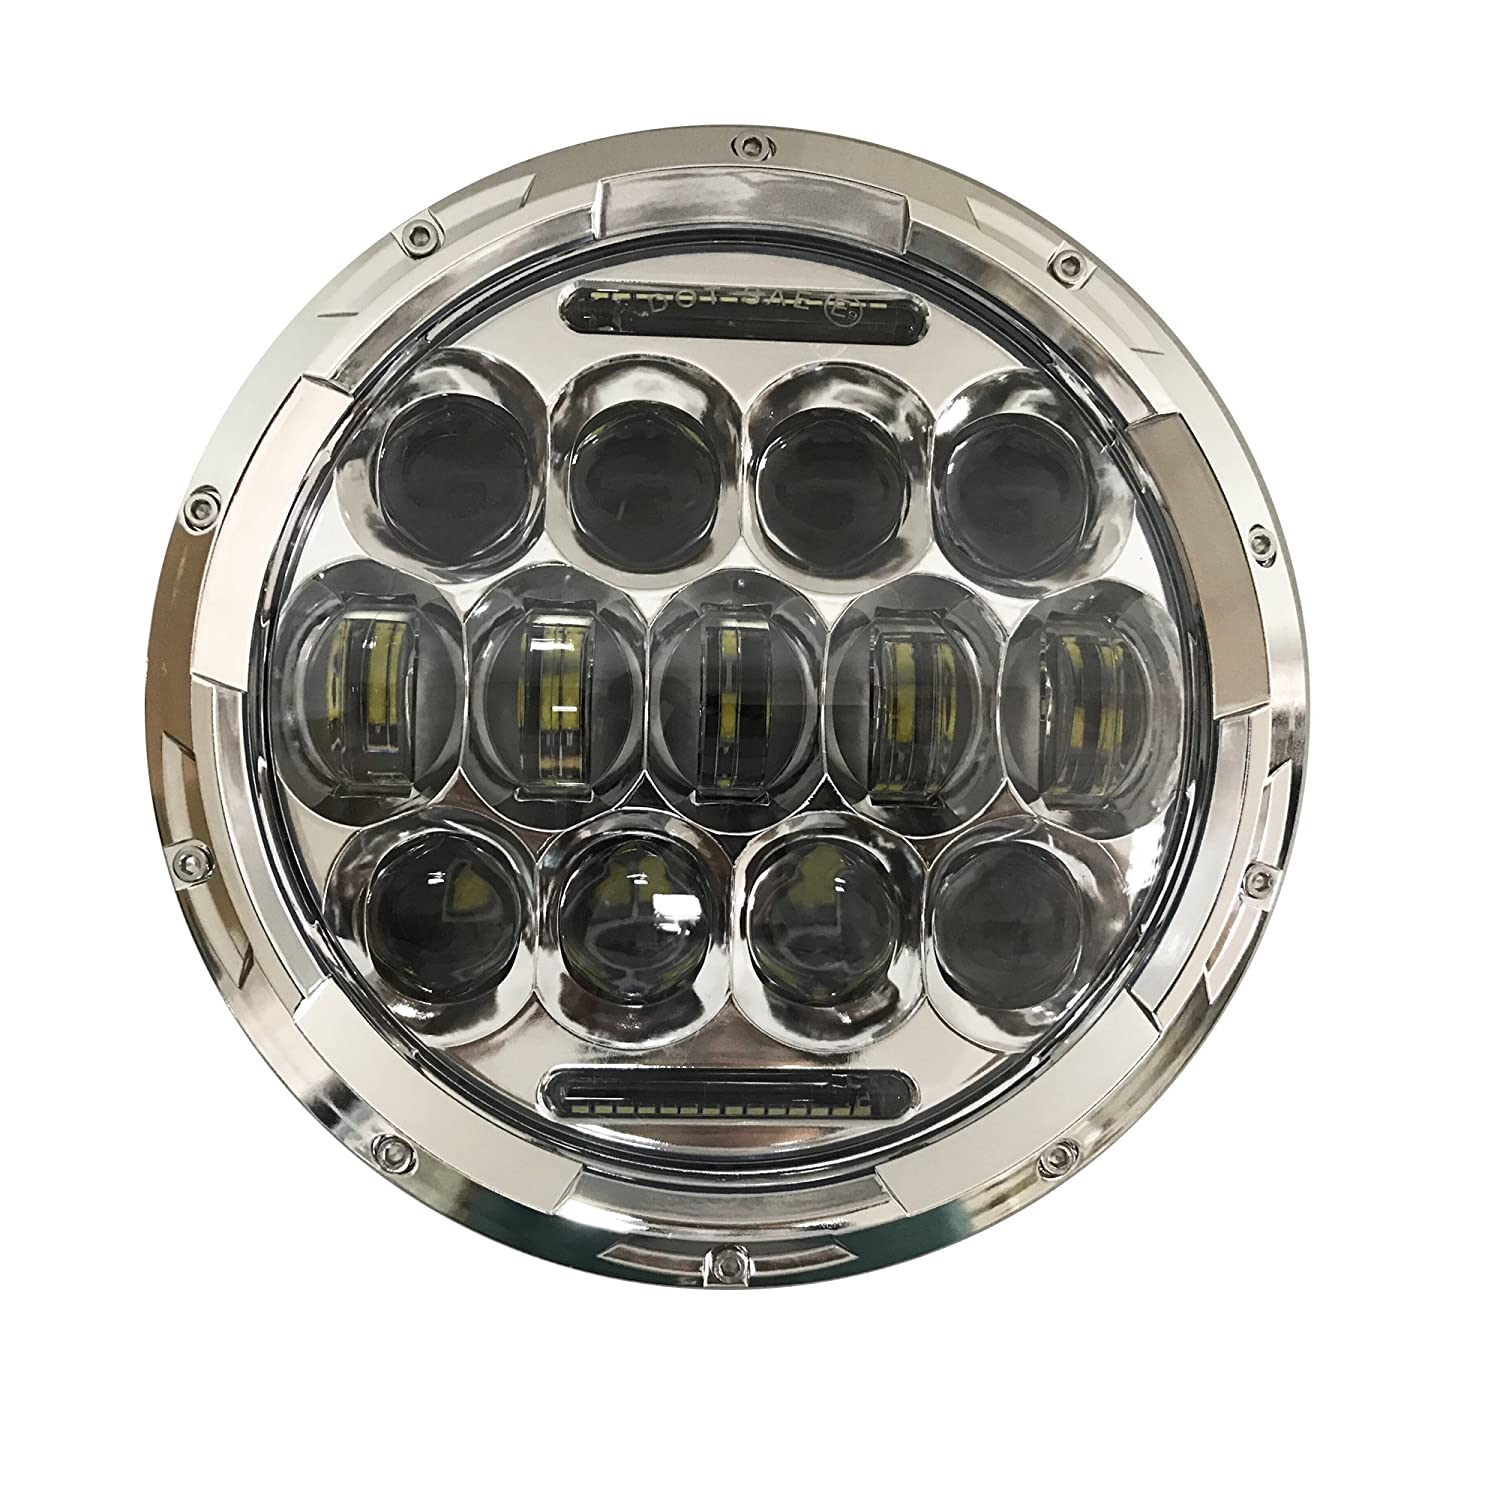 7inch LED round Headlight 75W Hi//Lo Beam Headlamp with White DRL and 4.5inch LED Fog Lights 4-1//2 Passing Lights Spot Lights for Harley Davidson